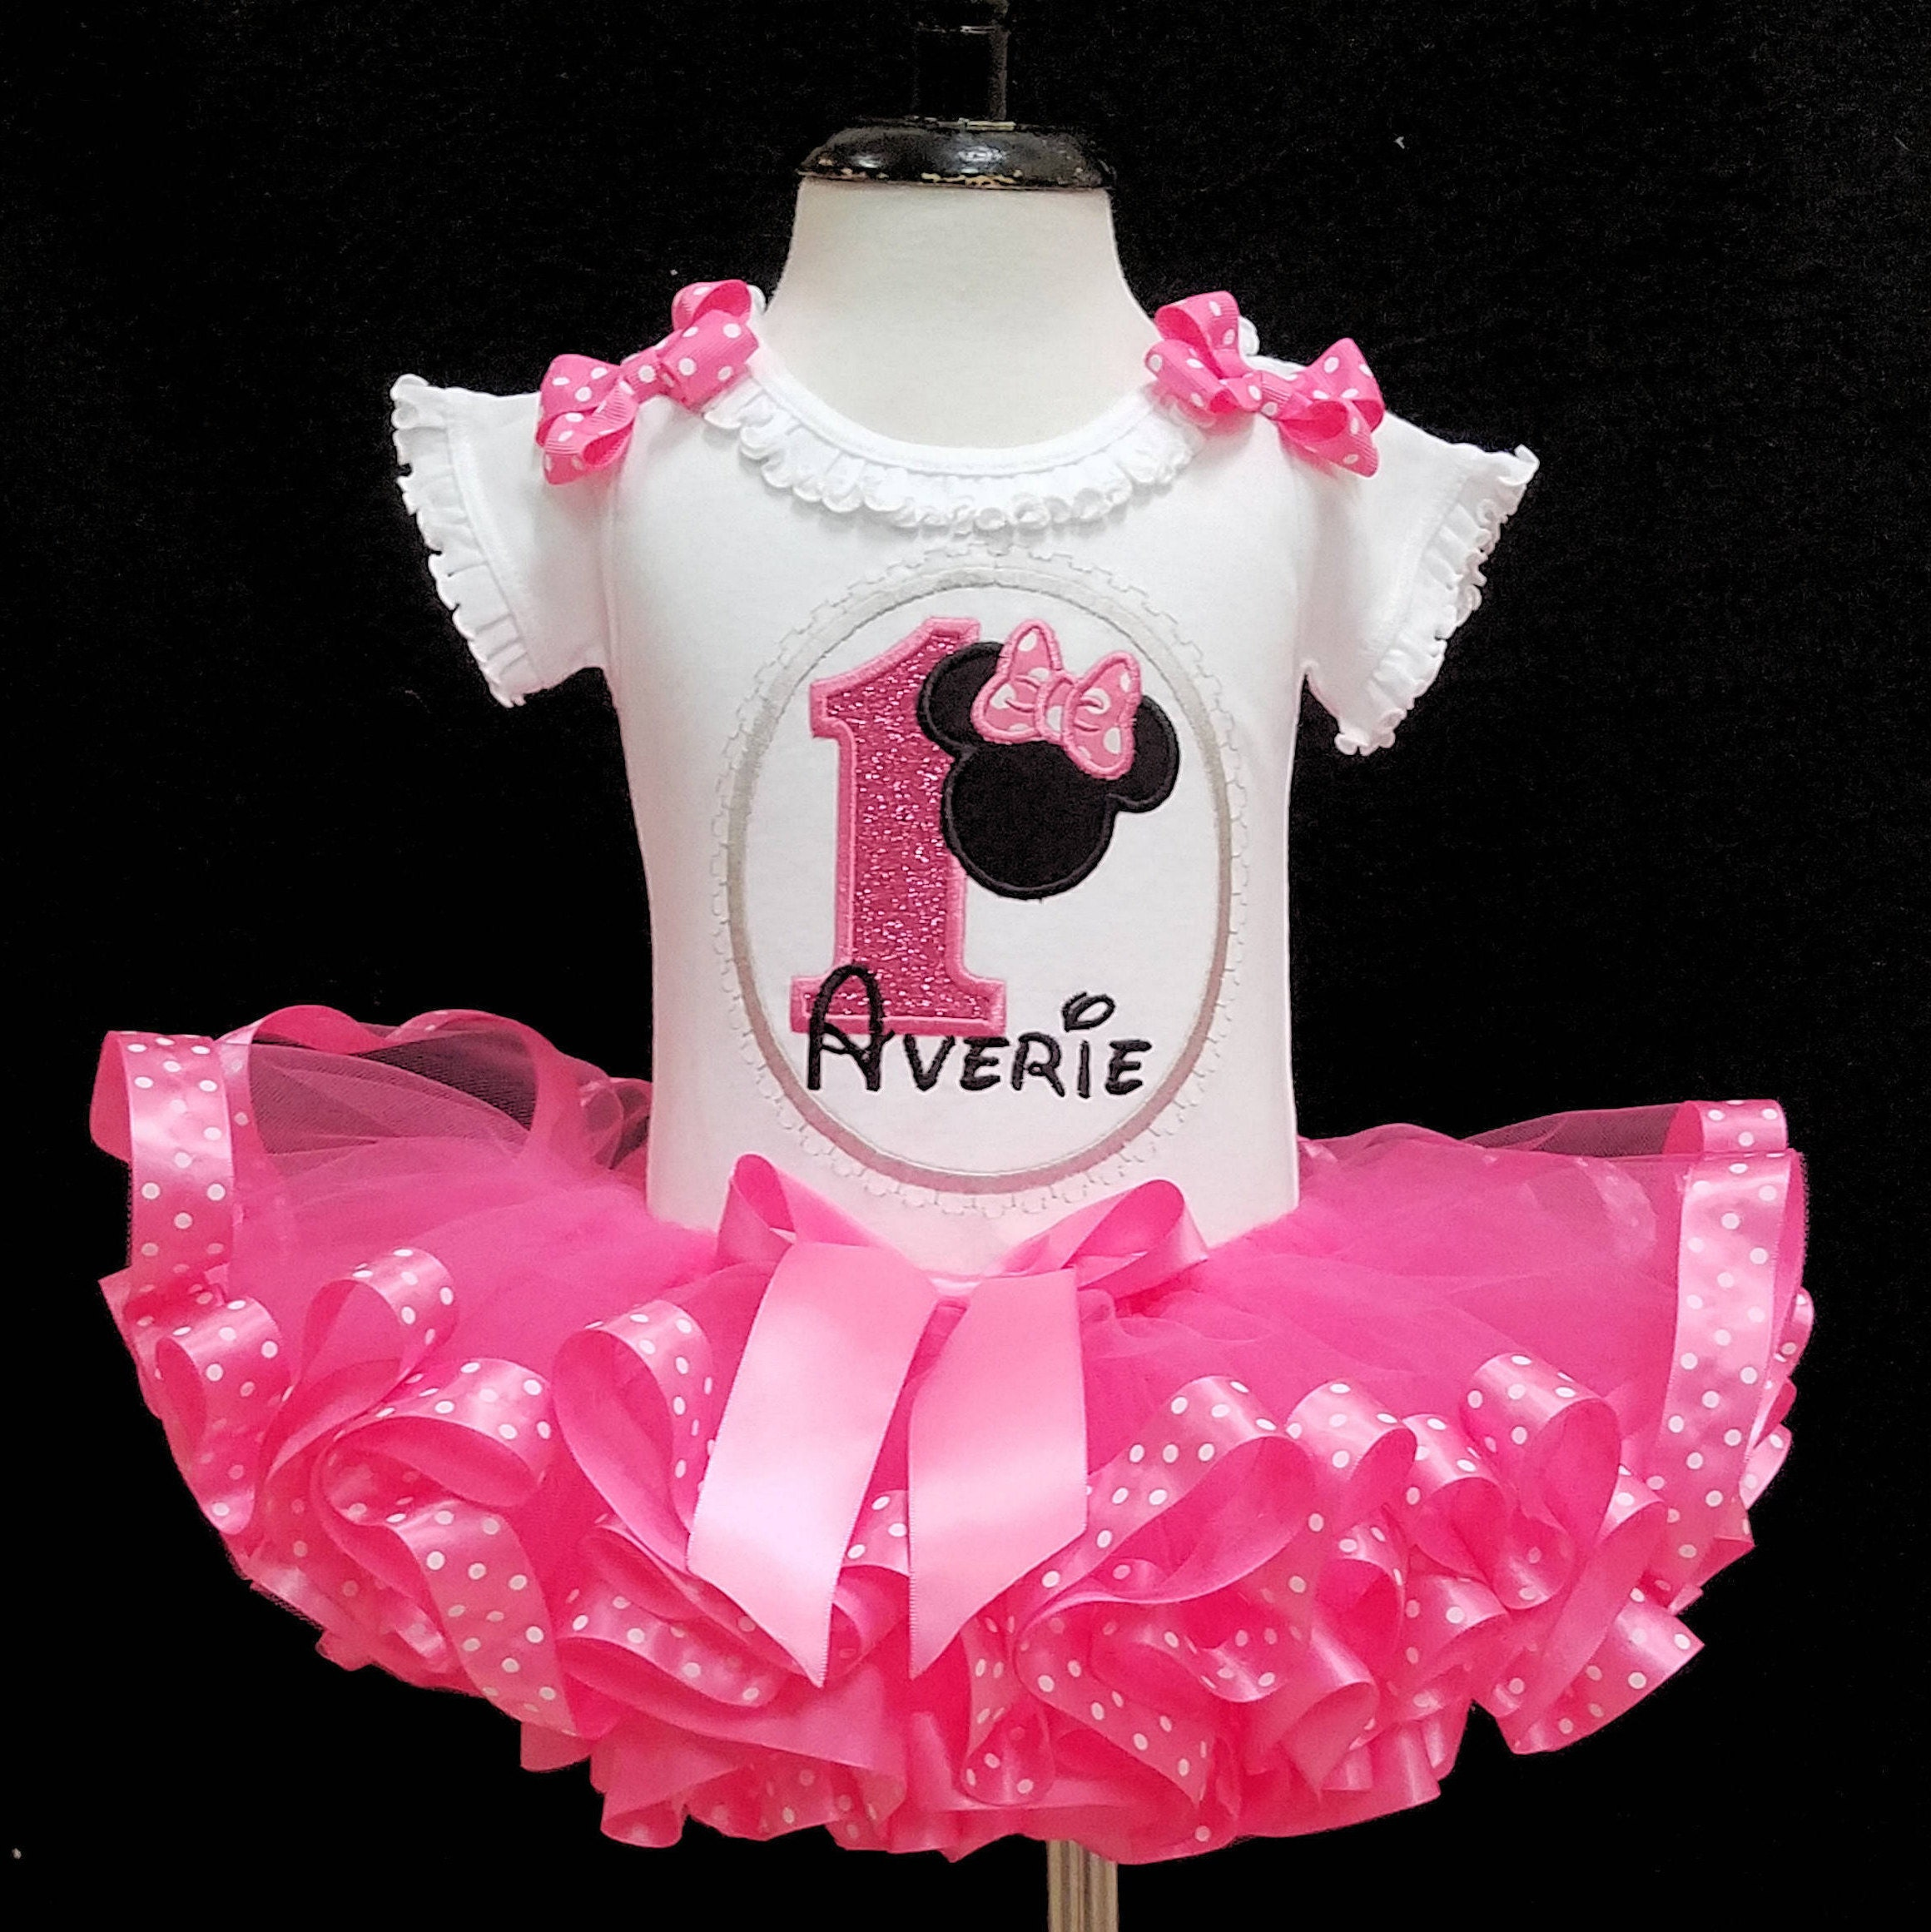 Minnie Mouse birthday outfit, baby girl 1st birthday outfit, Minnie Mouse 1st birthday outfit girl  Minnie Mouse first birthday outfit